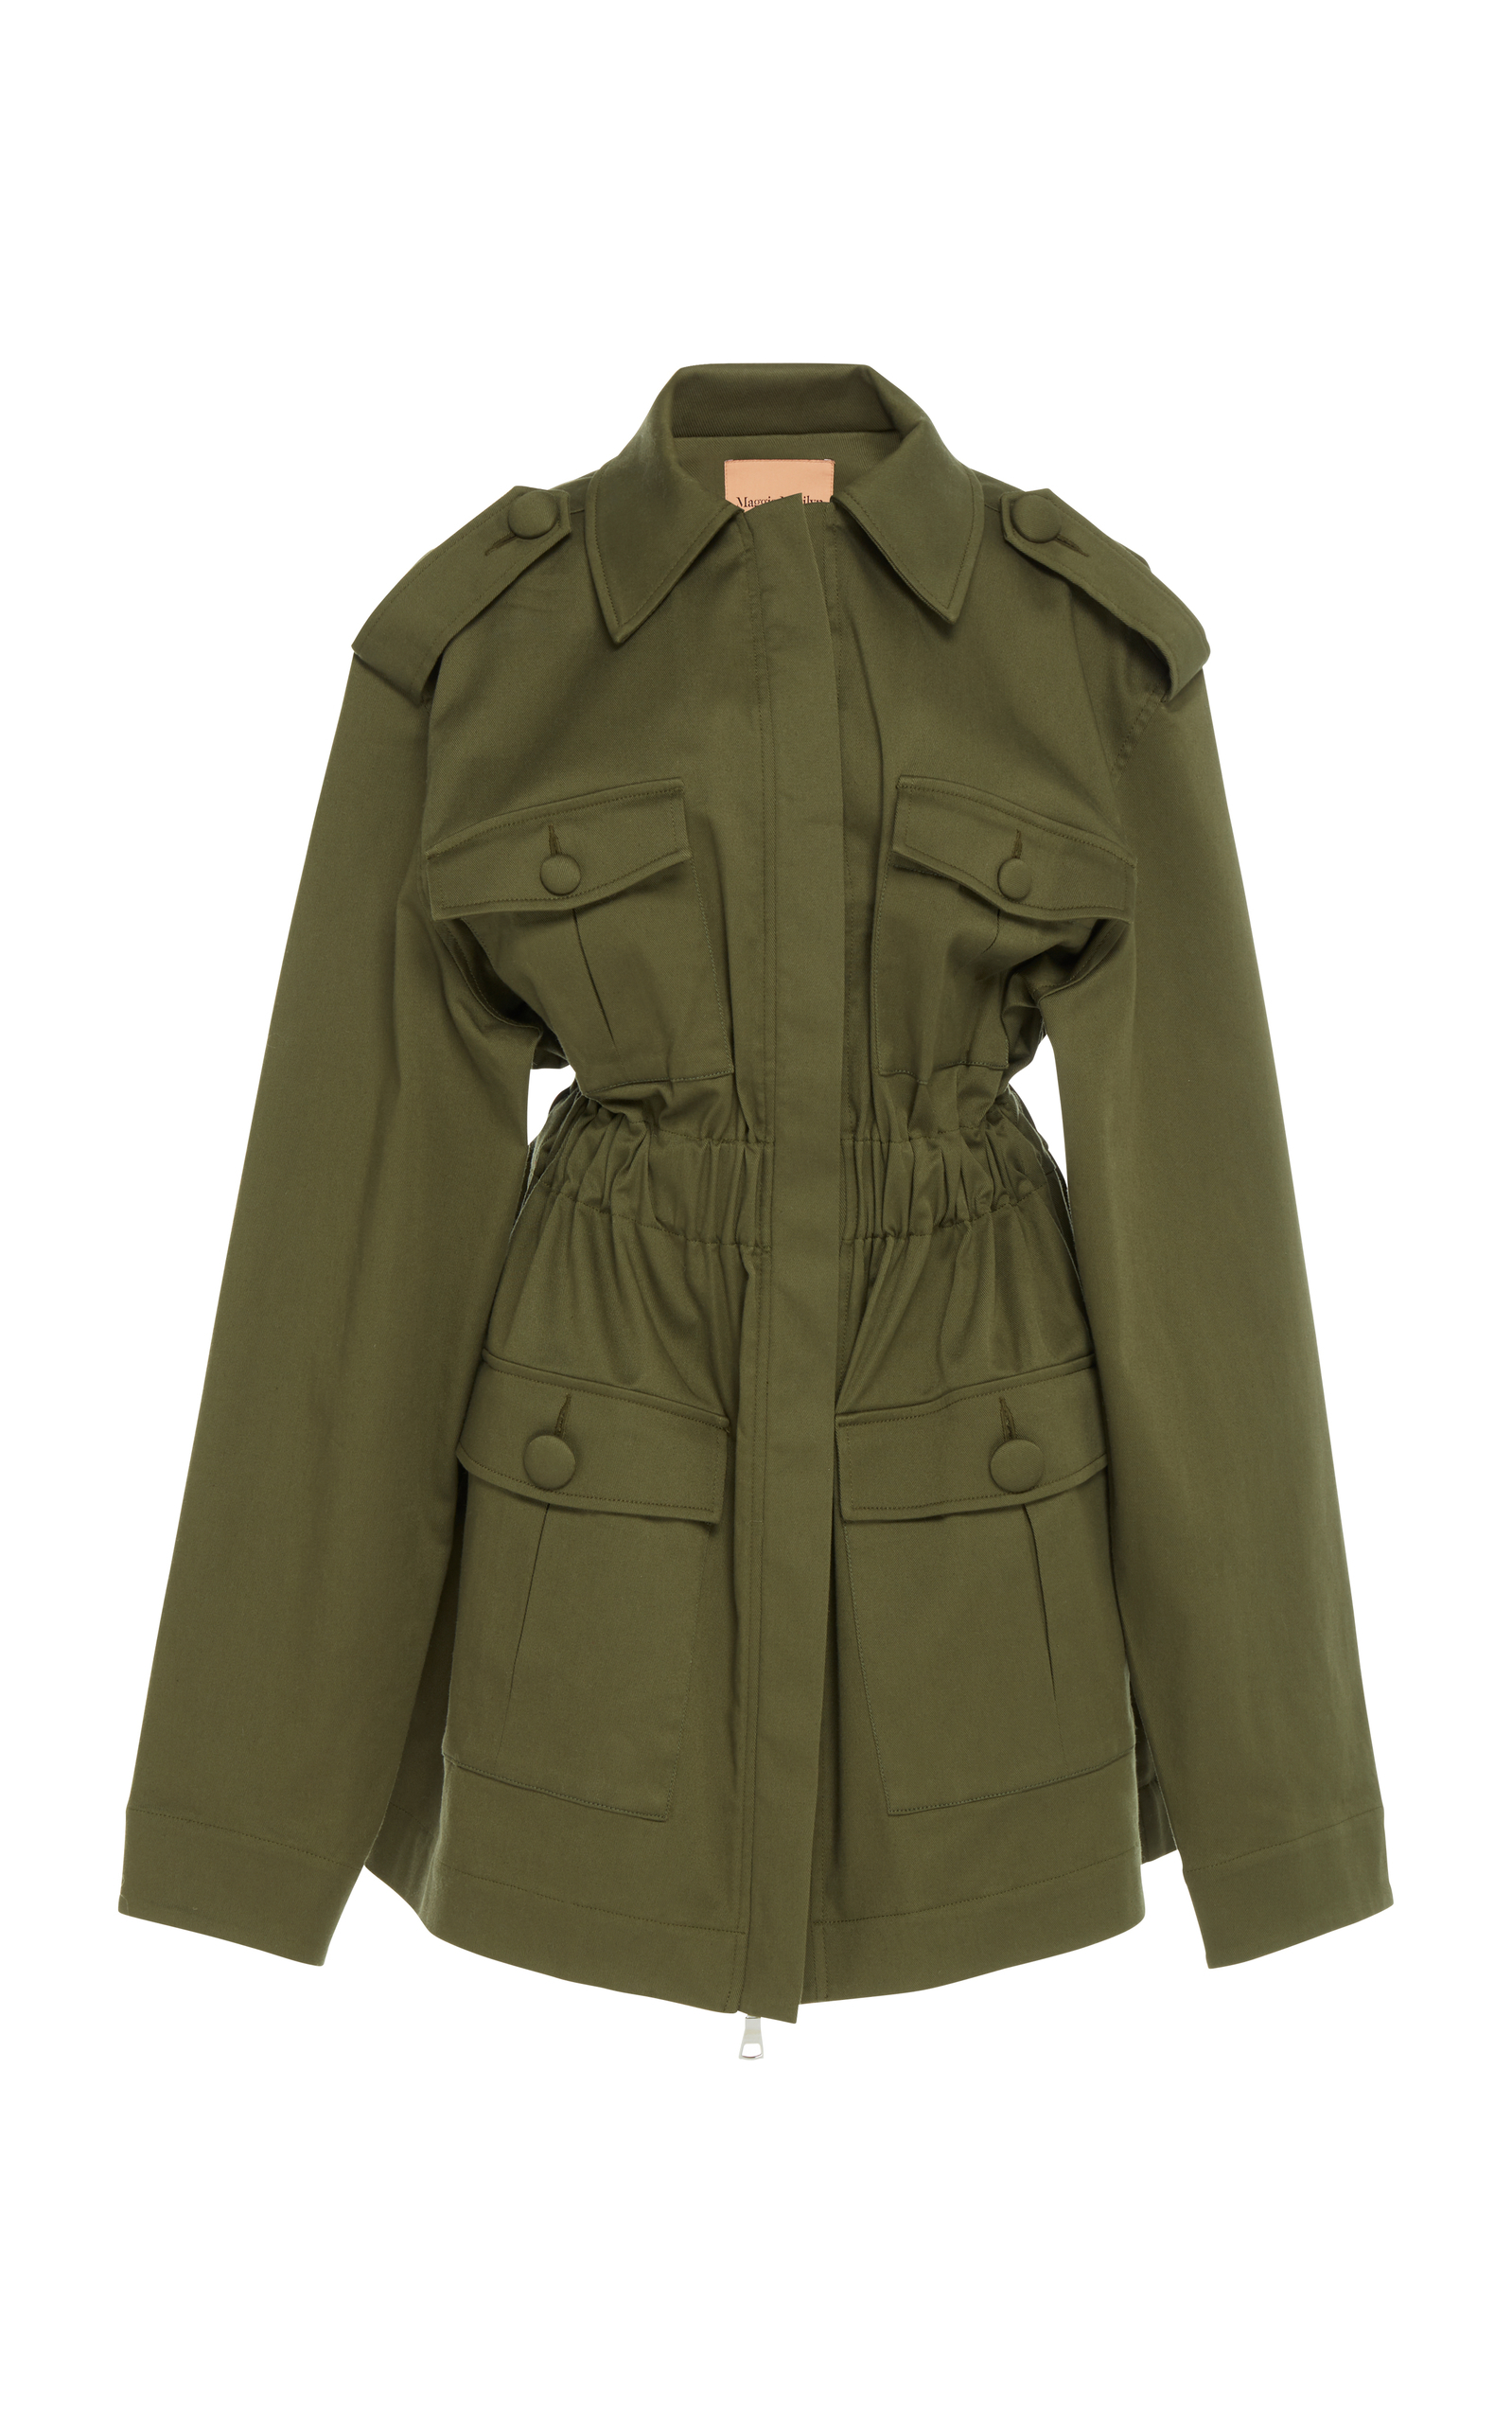 Maggie Fight You Jacket Ill For Marilyn xIBSHAw8